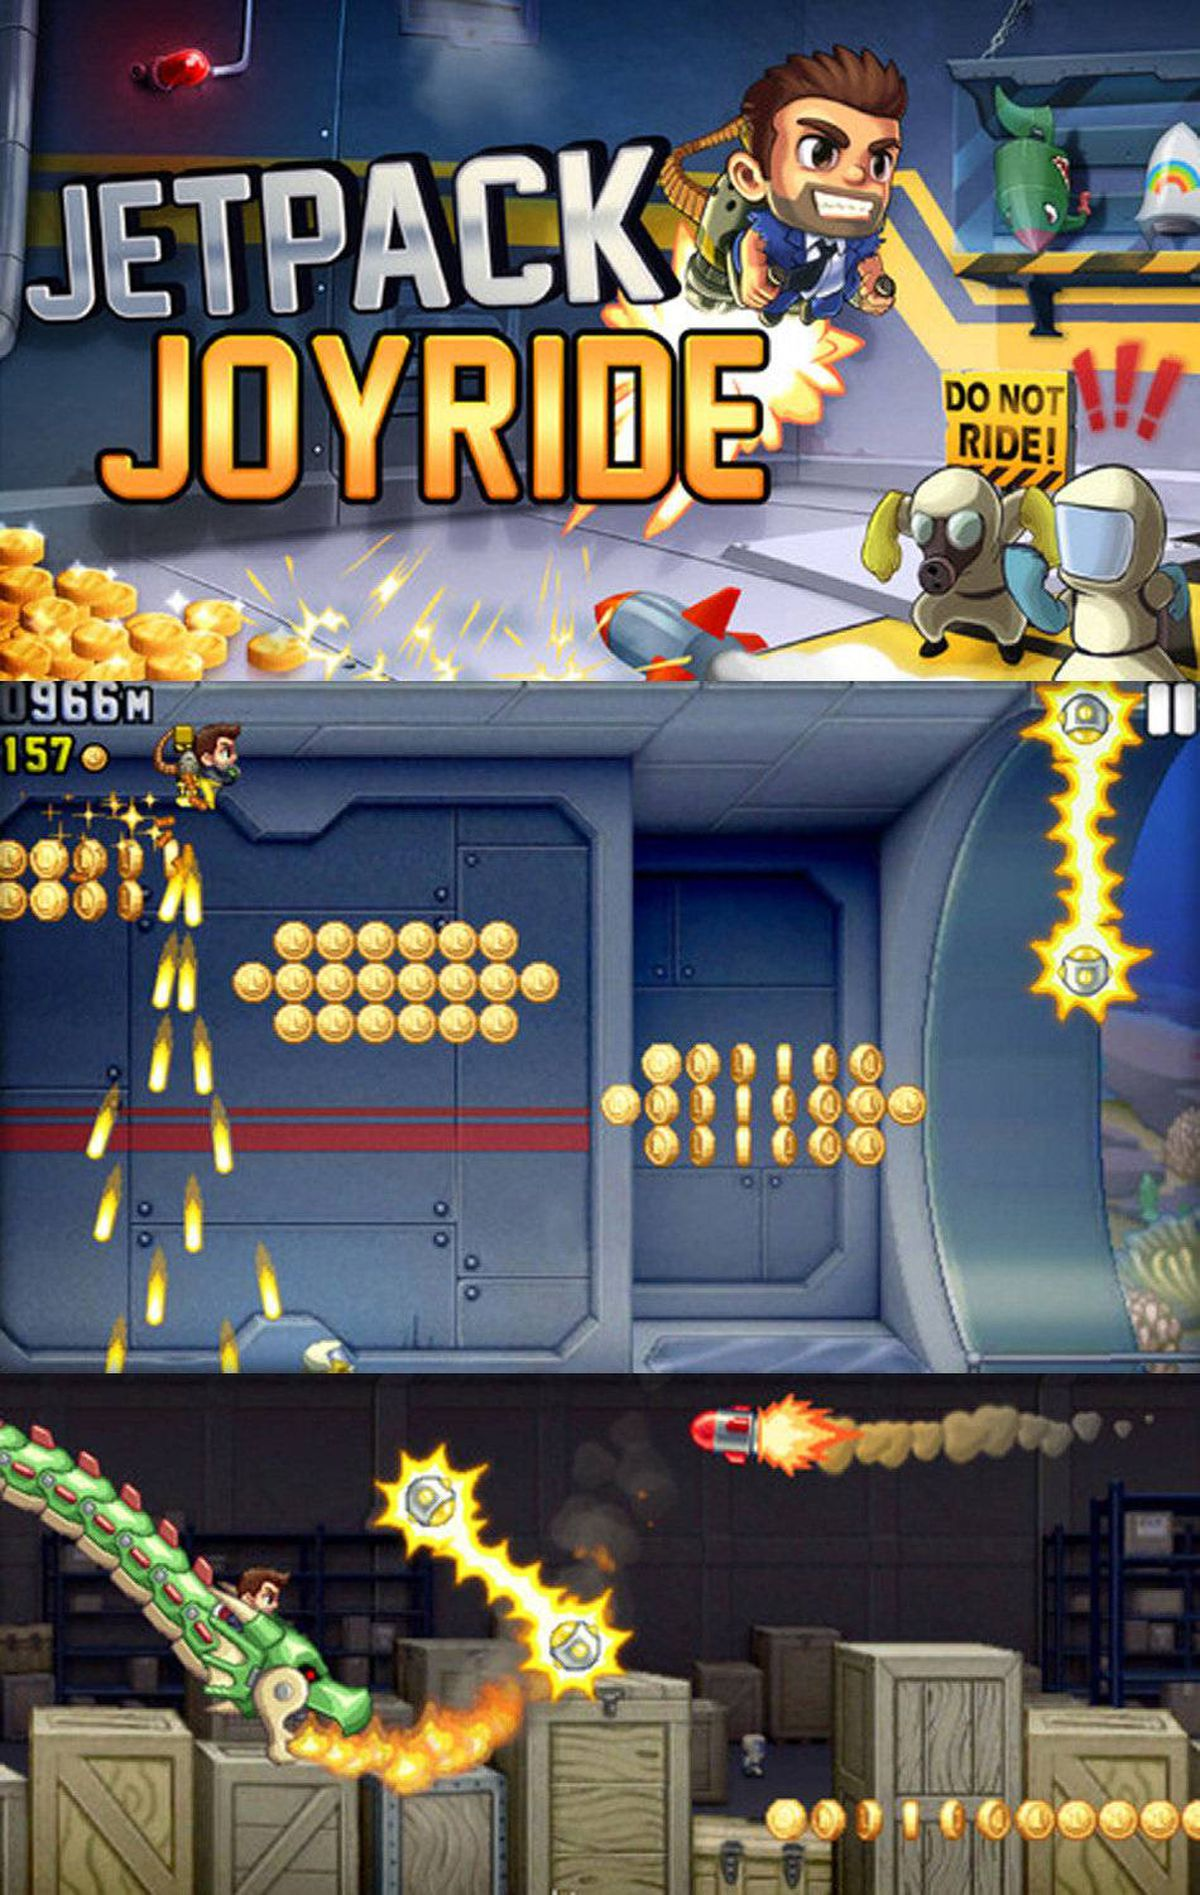 Jetpack Joyride This new game from the producers of Fruit Ninja and Monster Dash is full of energy and fun. You control Barry Steakfries, the bored little hero who should have ignored the secret lab, but instead broke in and stole the jetpack. Now he's trying to control his flight while being pursued by a small army of scientists. After liftoff, you control Barry's flight by touching the screen. (He descends if you let go.) Pilot your way through the secret lab for points, collect coins and complete missions to earn cash and buy new gear (like a better jetpack). ($0.99, universal, halfbrick.com)